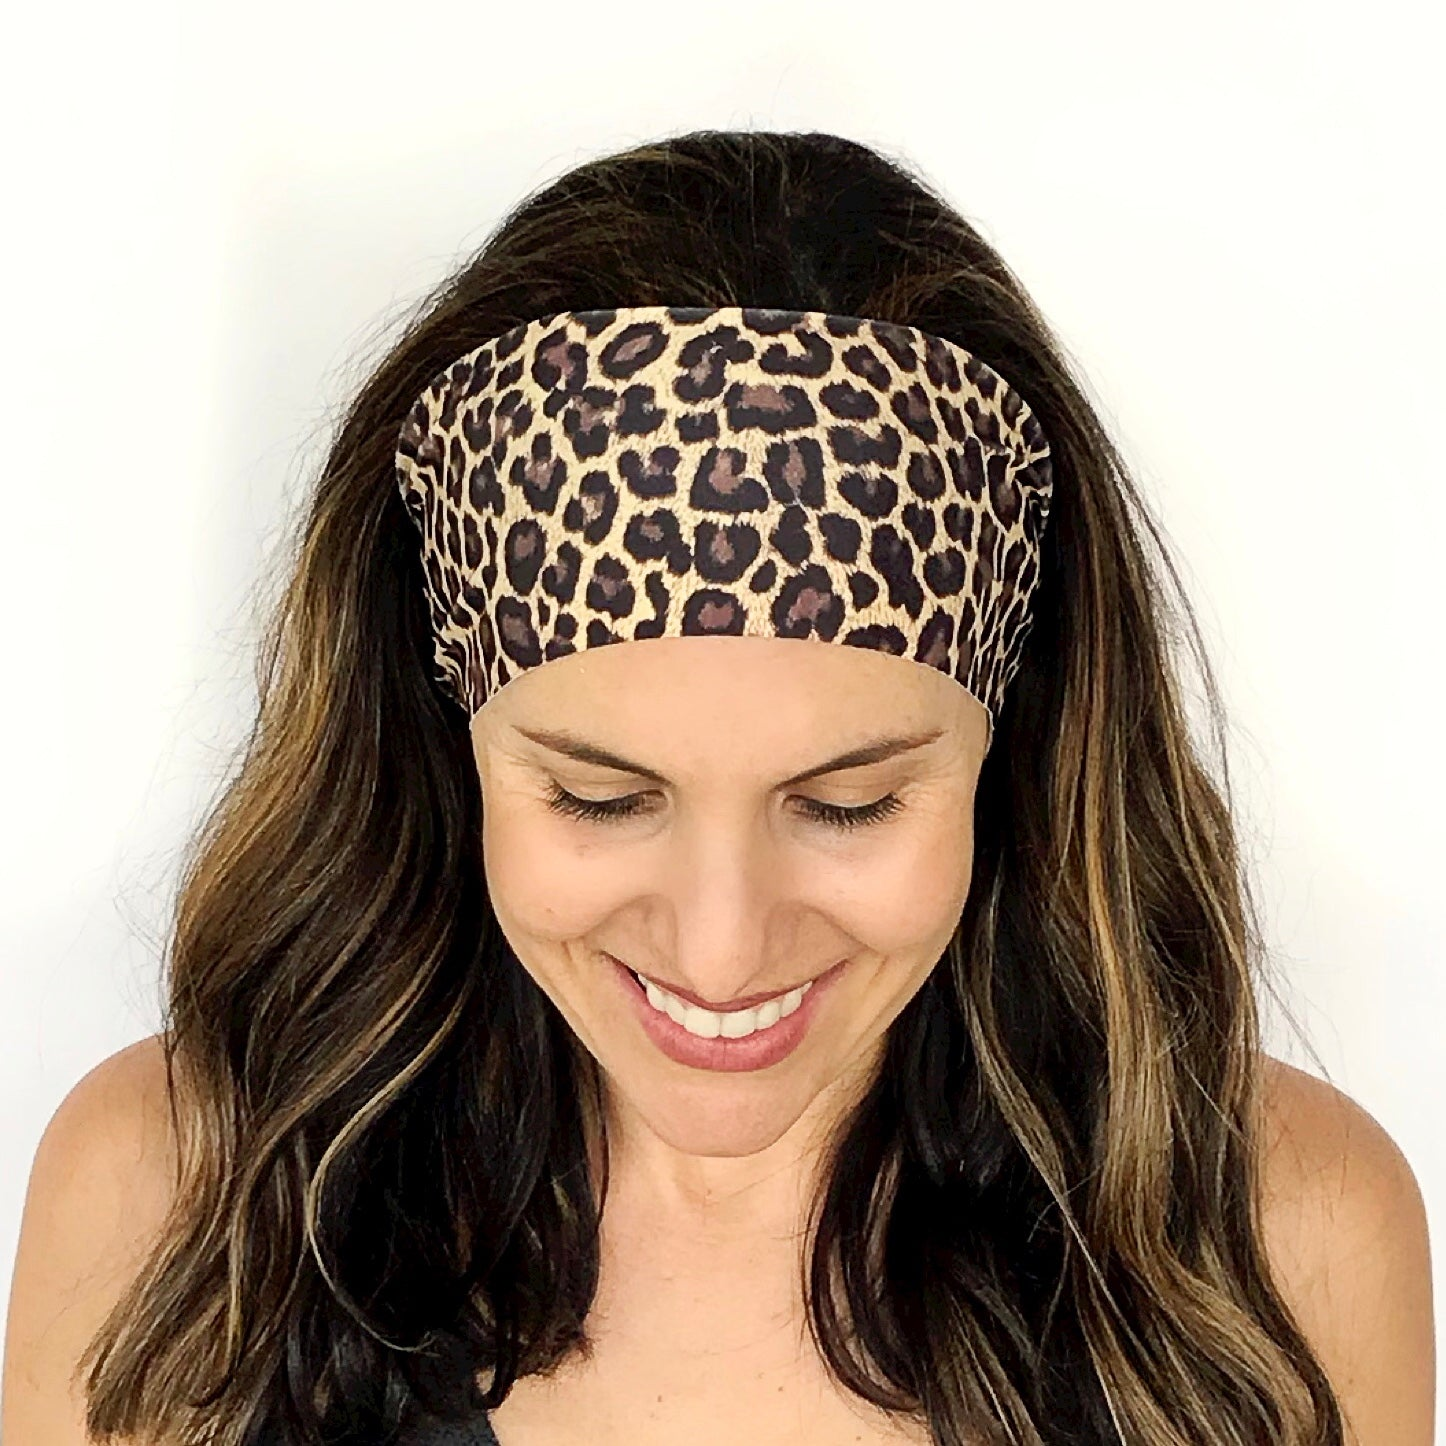 Wild Cat Workout Headband